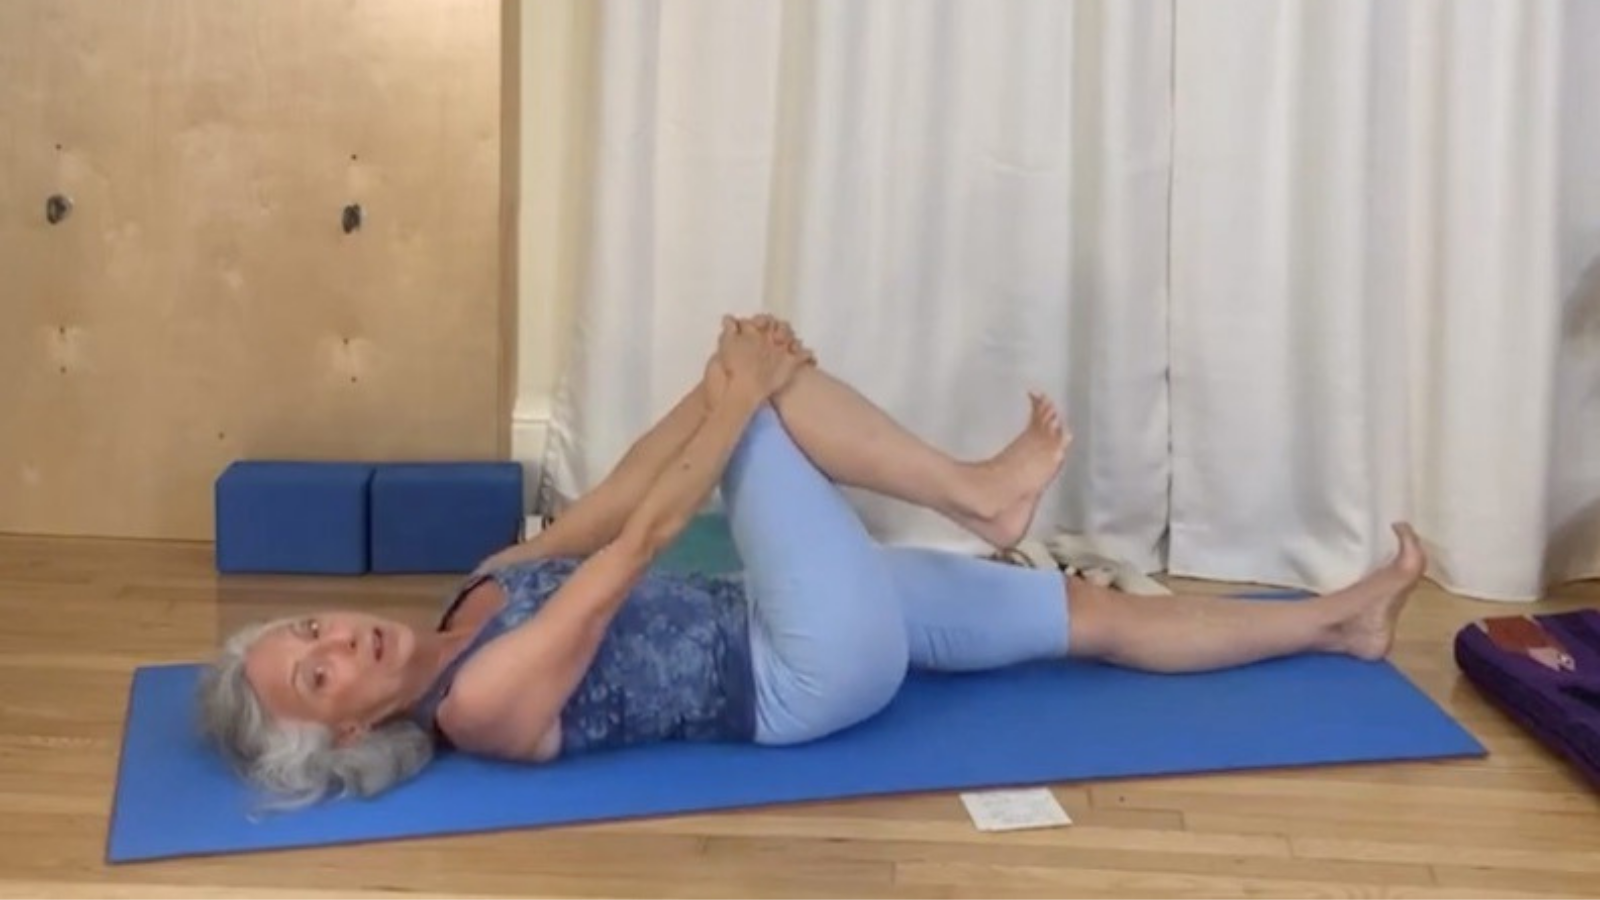 Yoga teacher practicing yoga that is healthy for the back